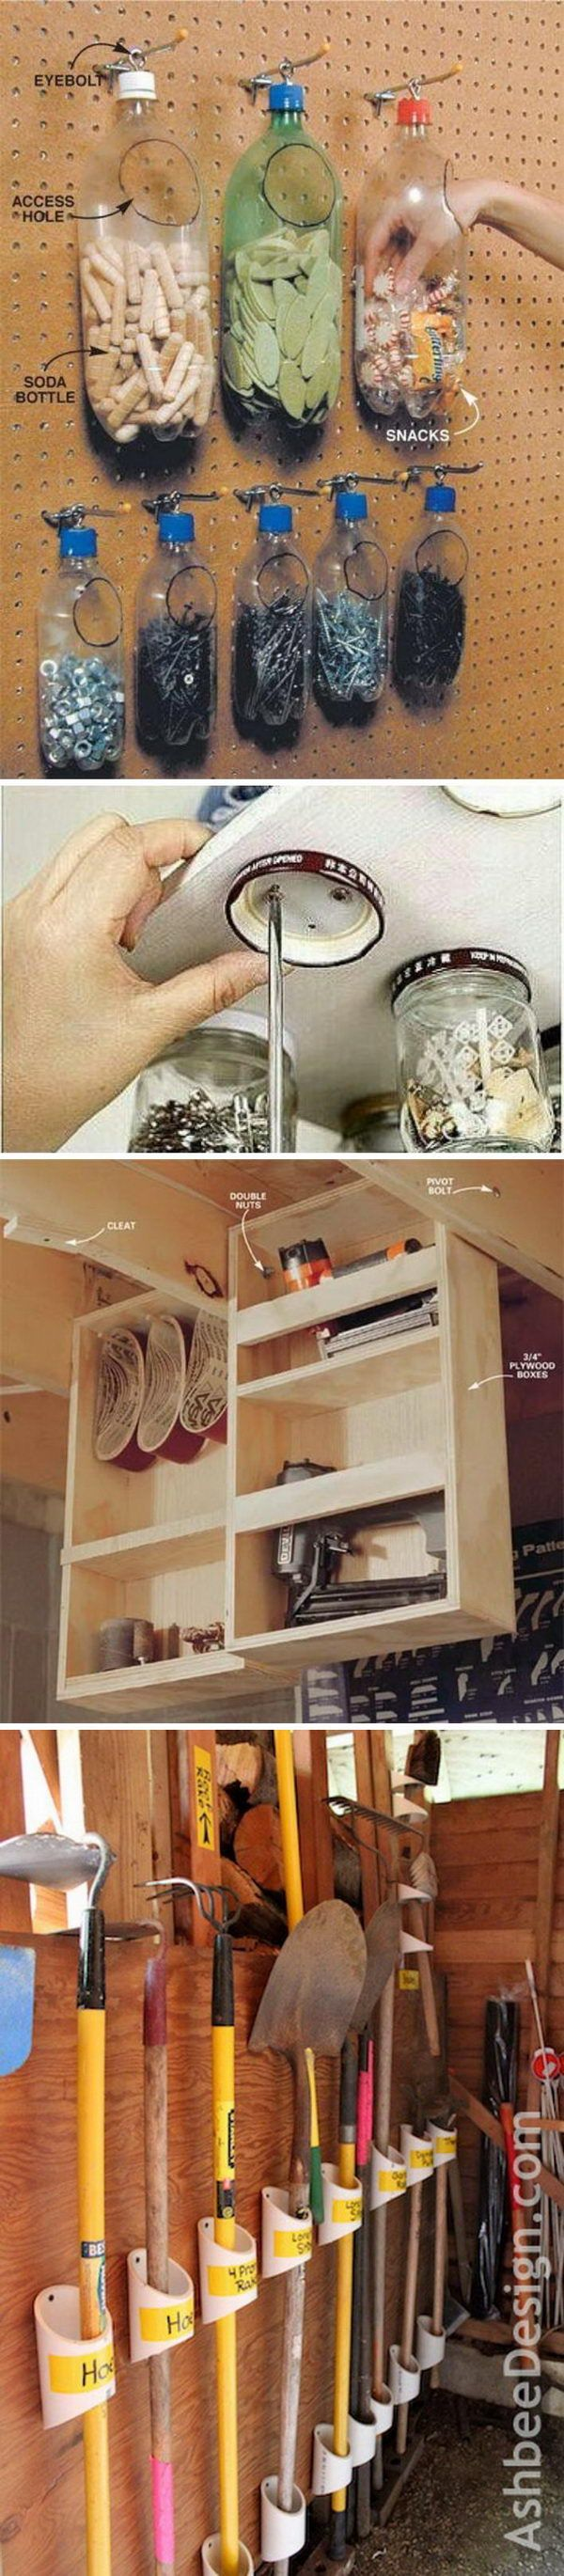 Clever Garage Organization and Storage Ideas